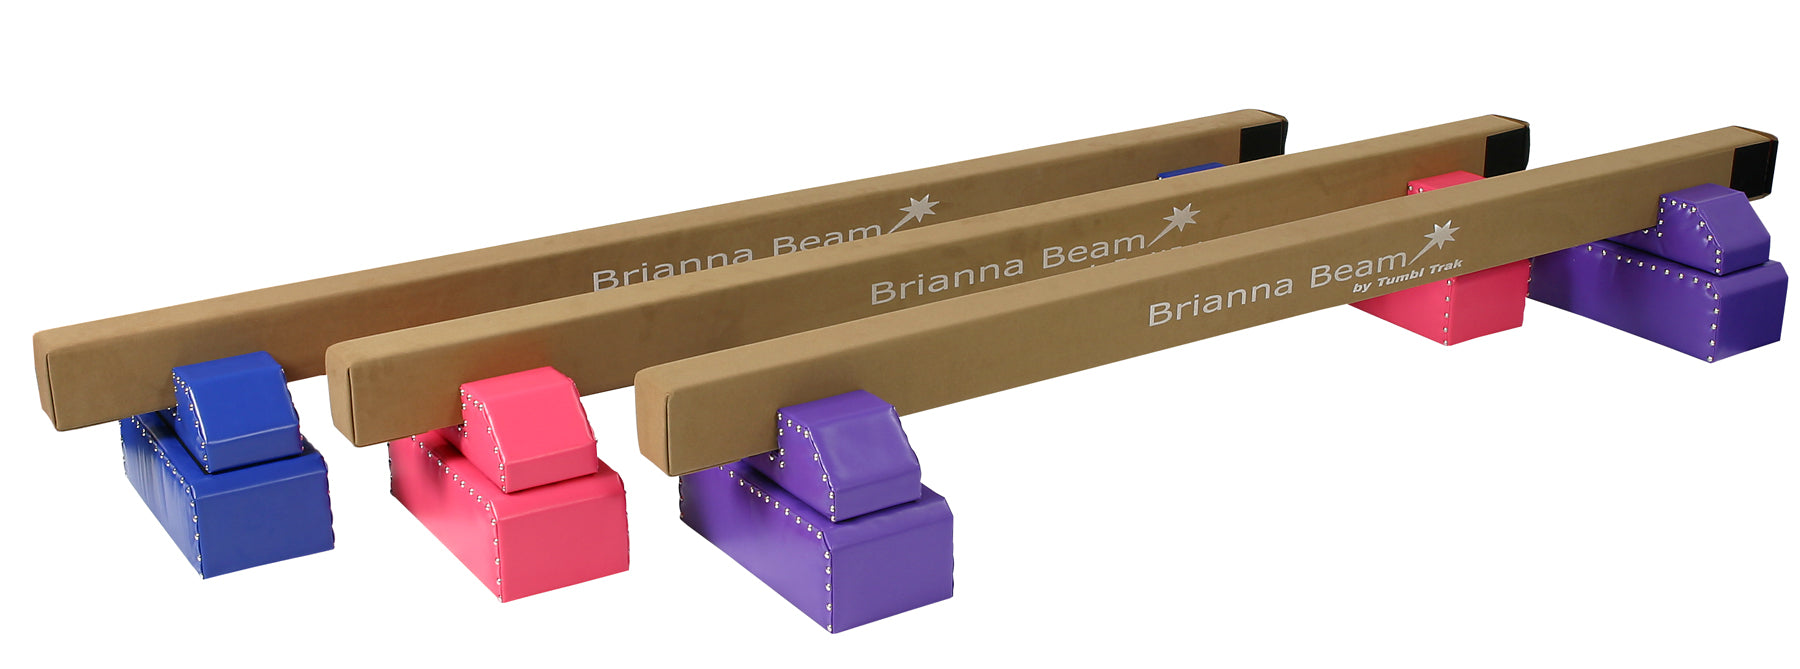 Brianna Beam Riser Optional Legs